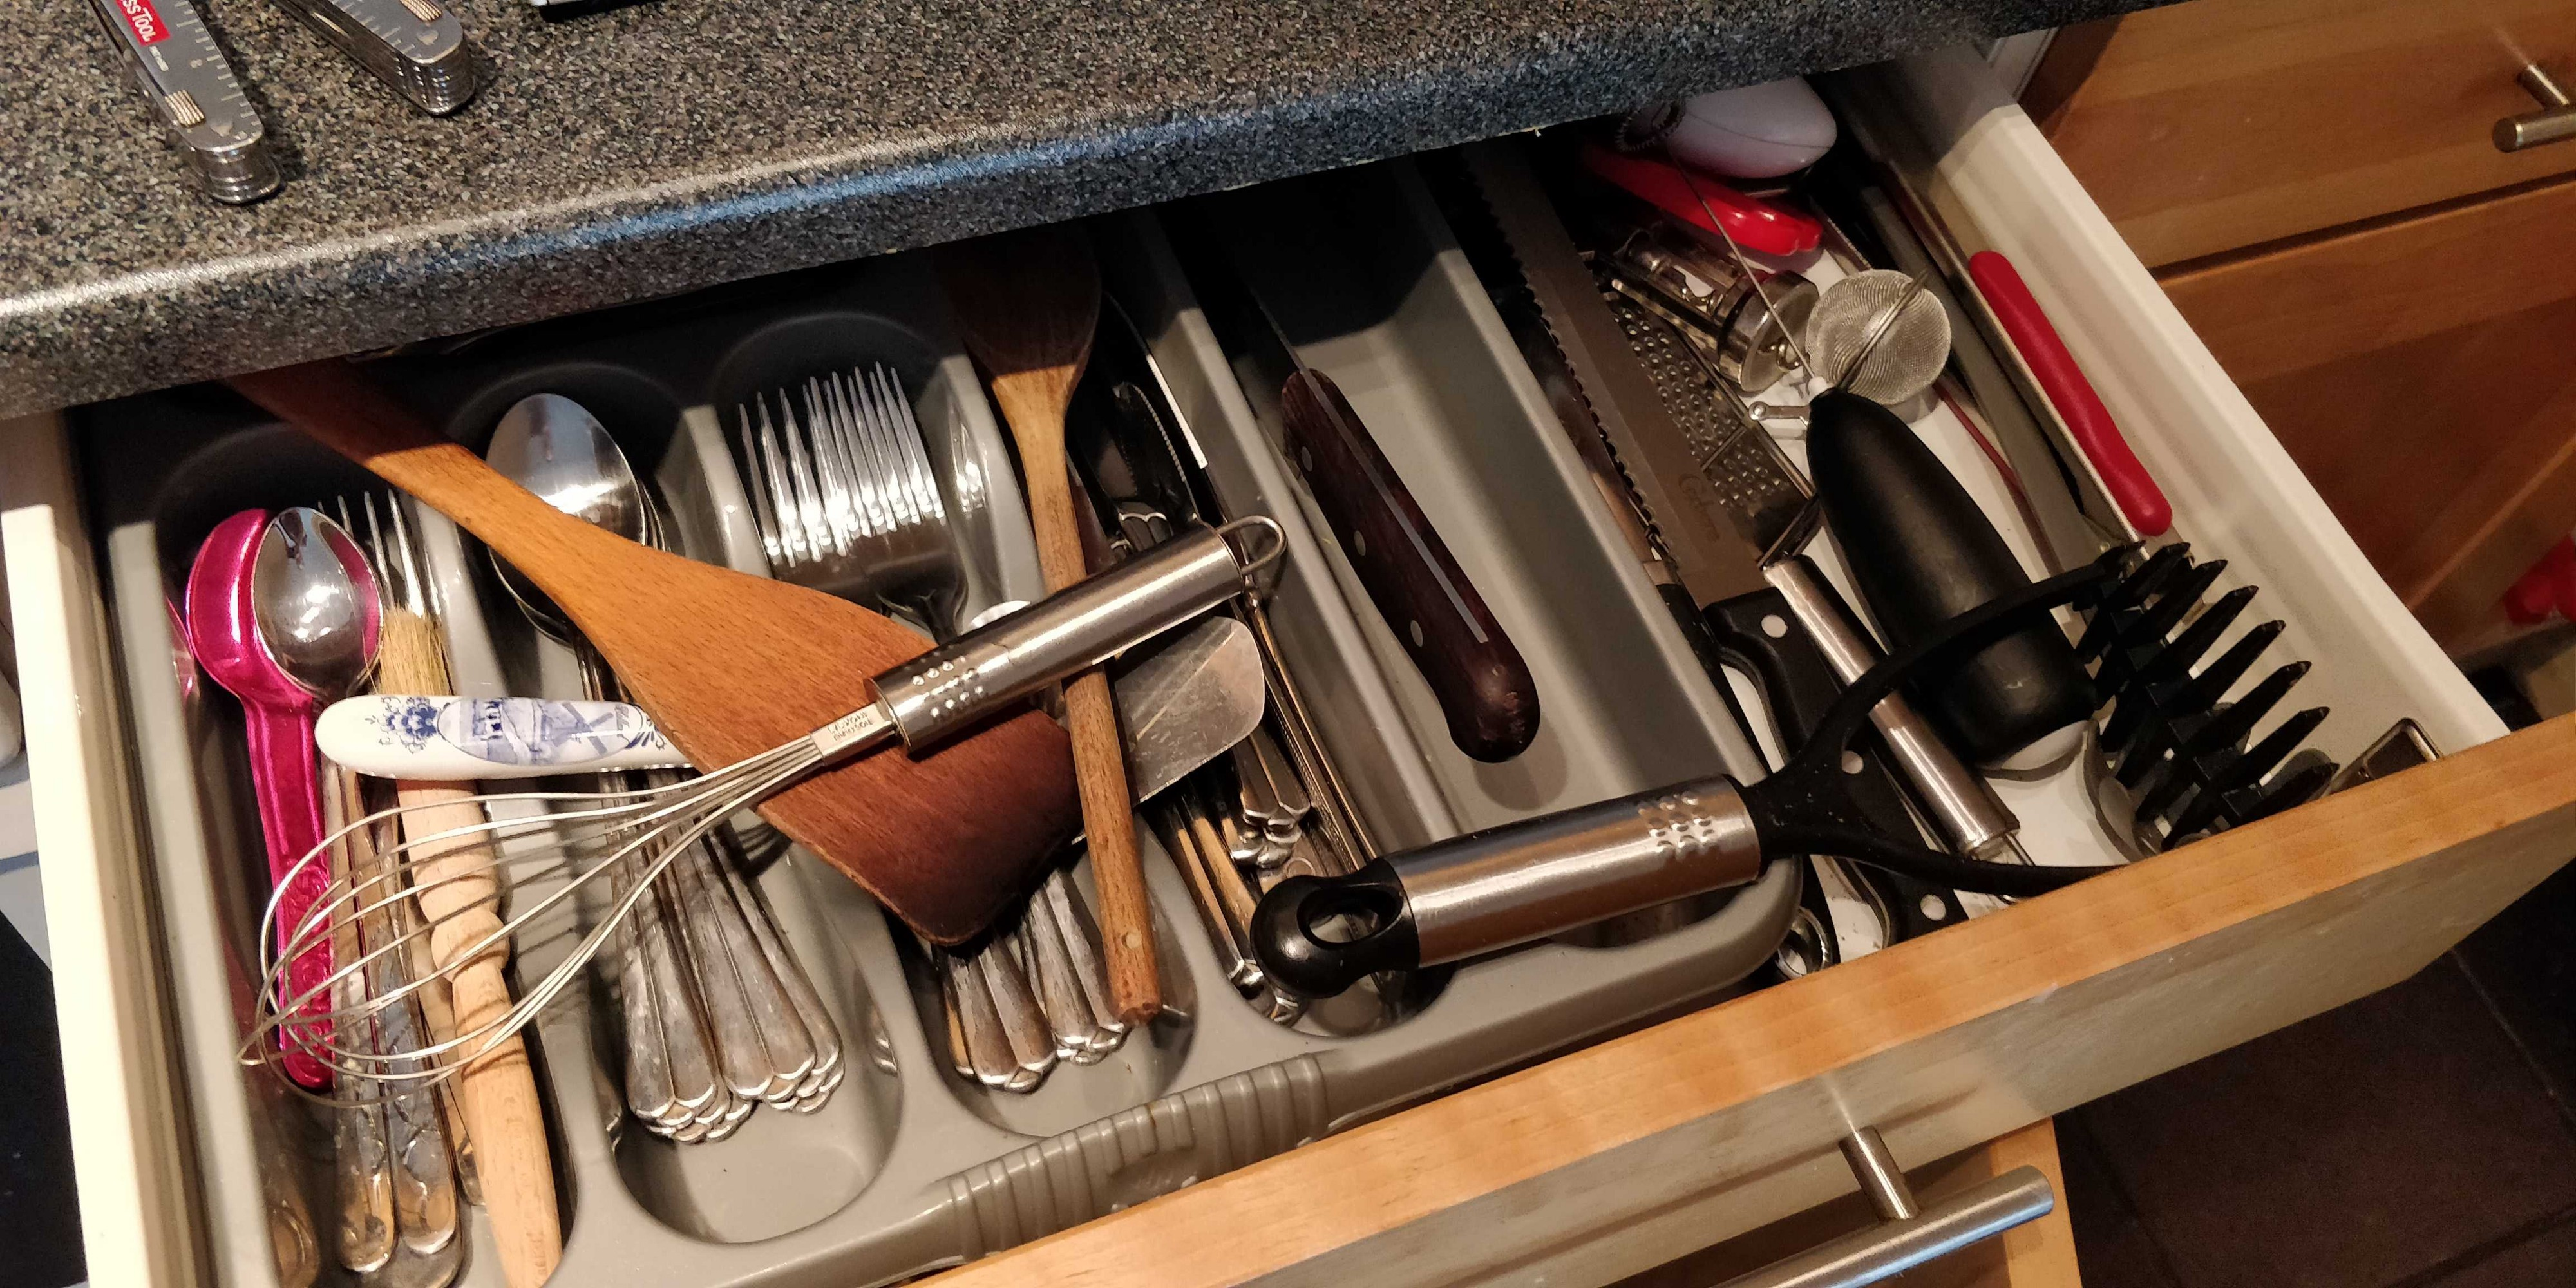 View of an open cutlery drawer, with the offending knife still lodged in the back of the drawer.